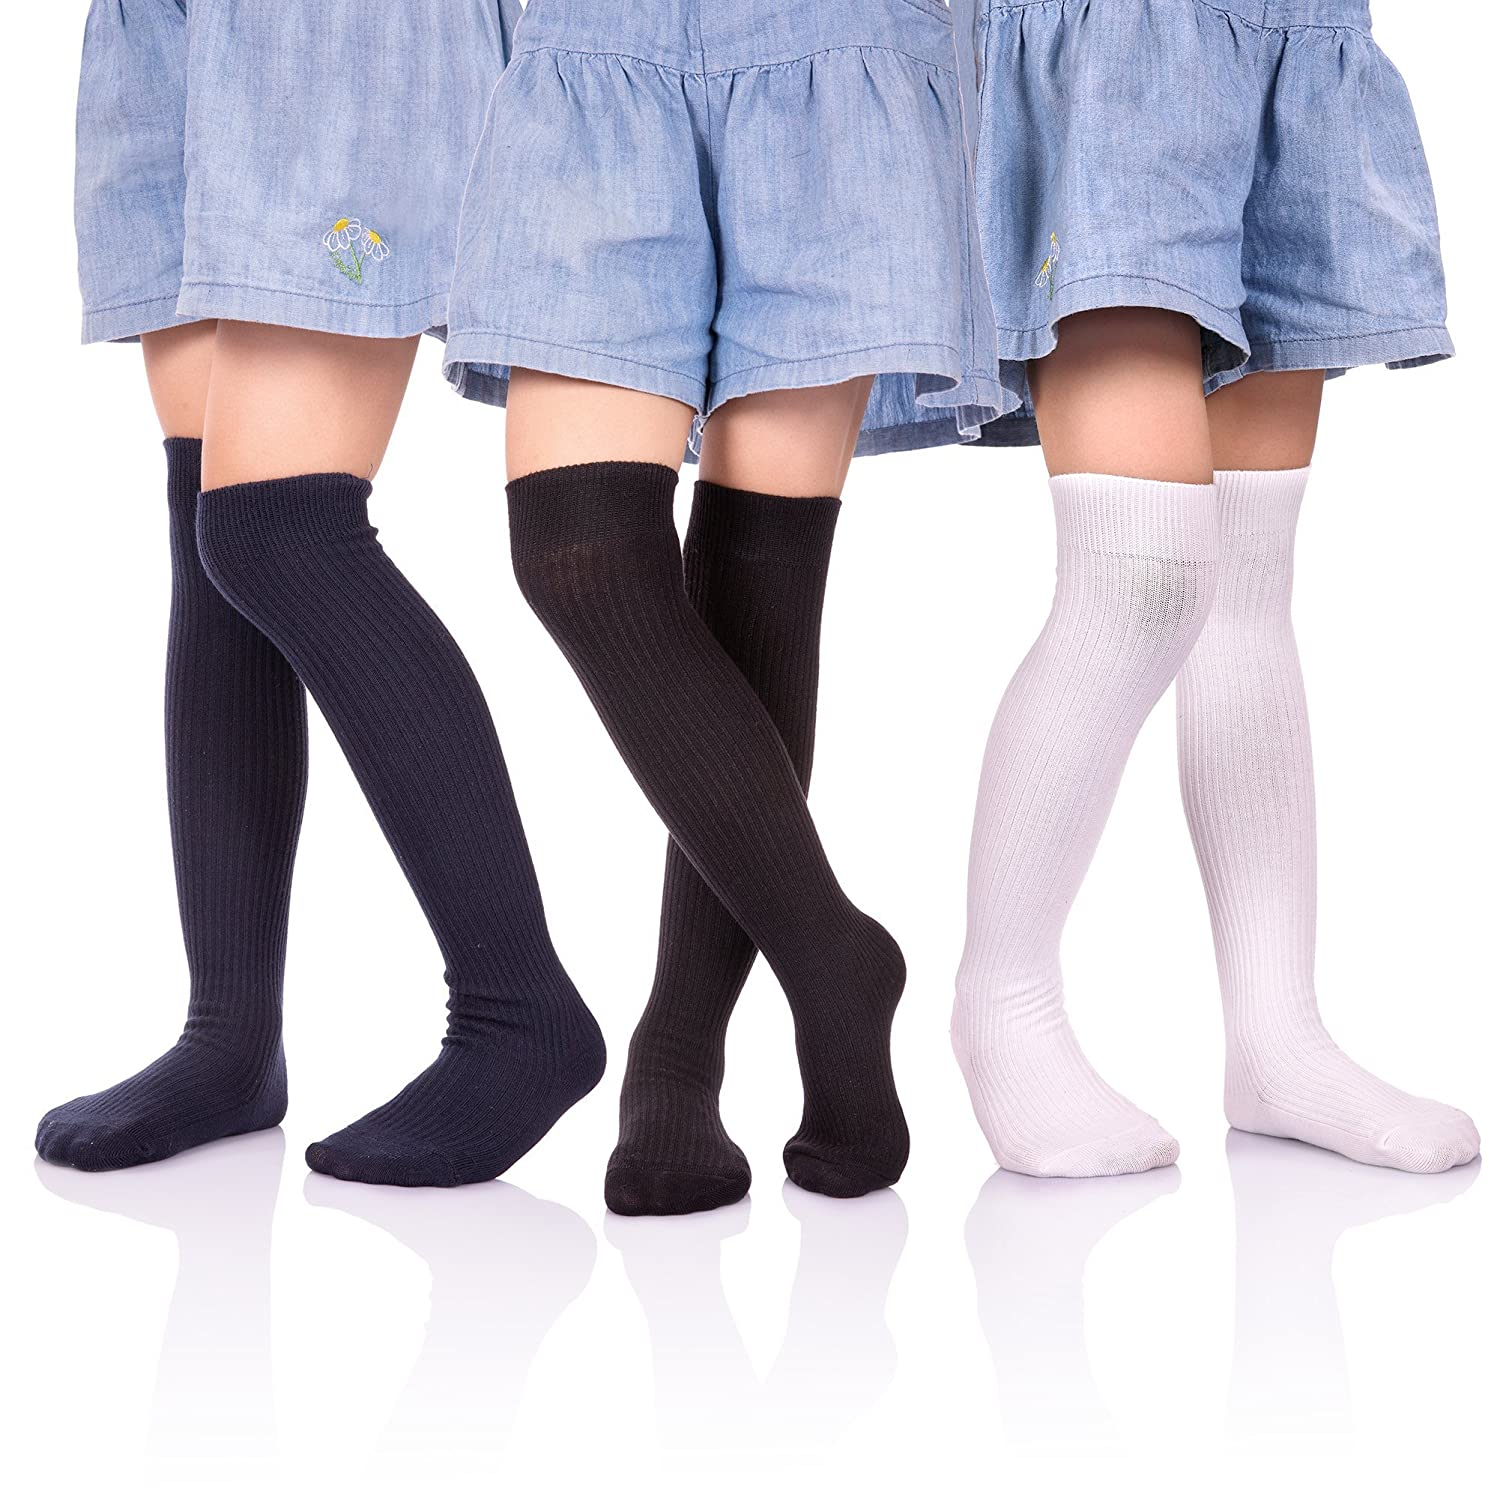 HERHILLY 3 Pack School Uniform Socks - Classic Stripe Cotton Over Knee-high Socks for Big Girls 3-12 Year old